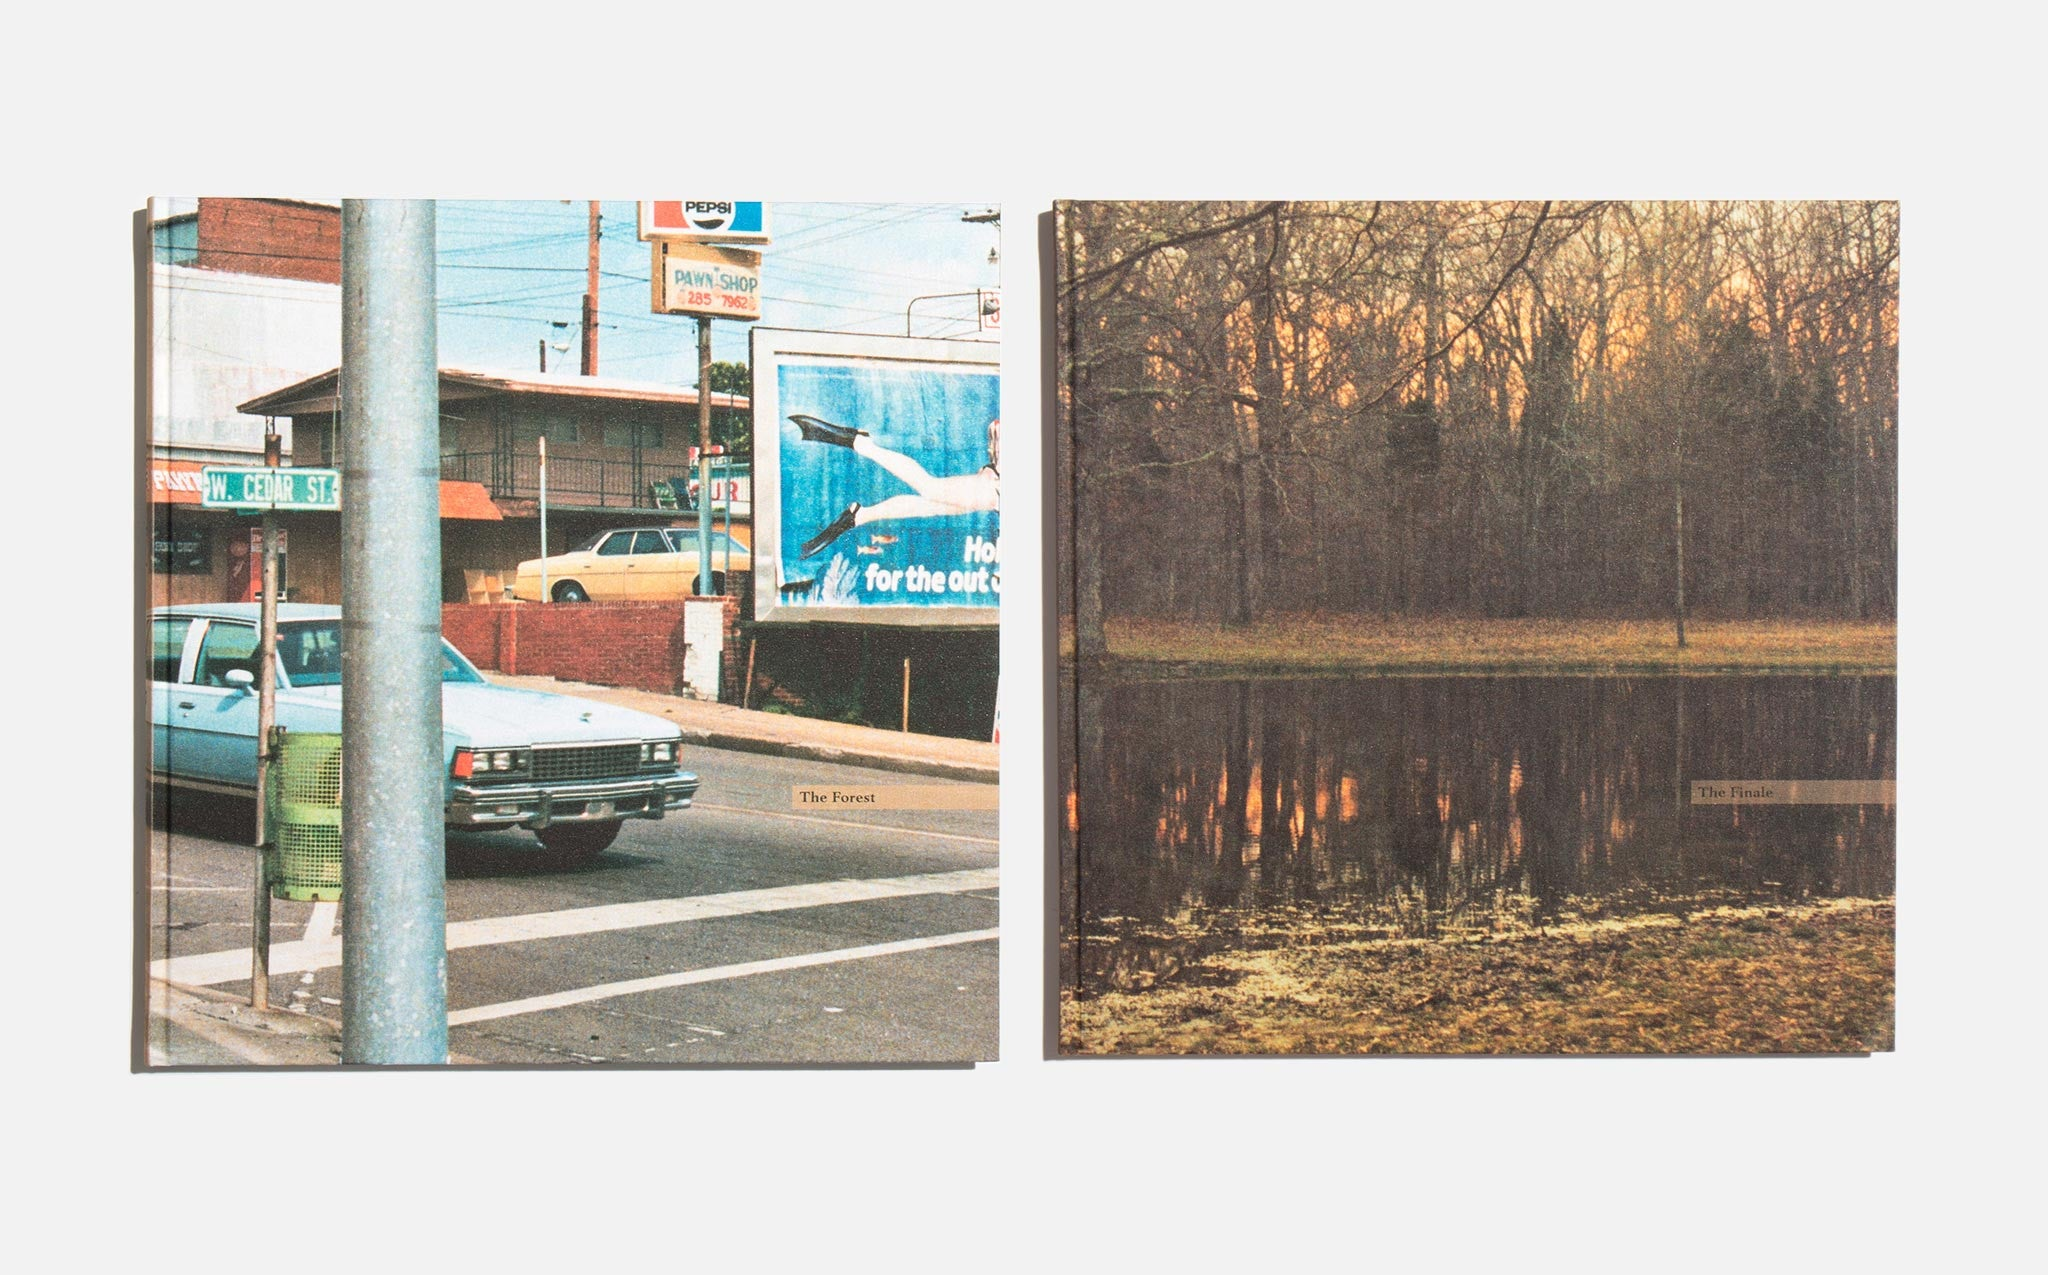 The Democratic Forest - William Eggleston